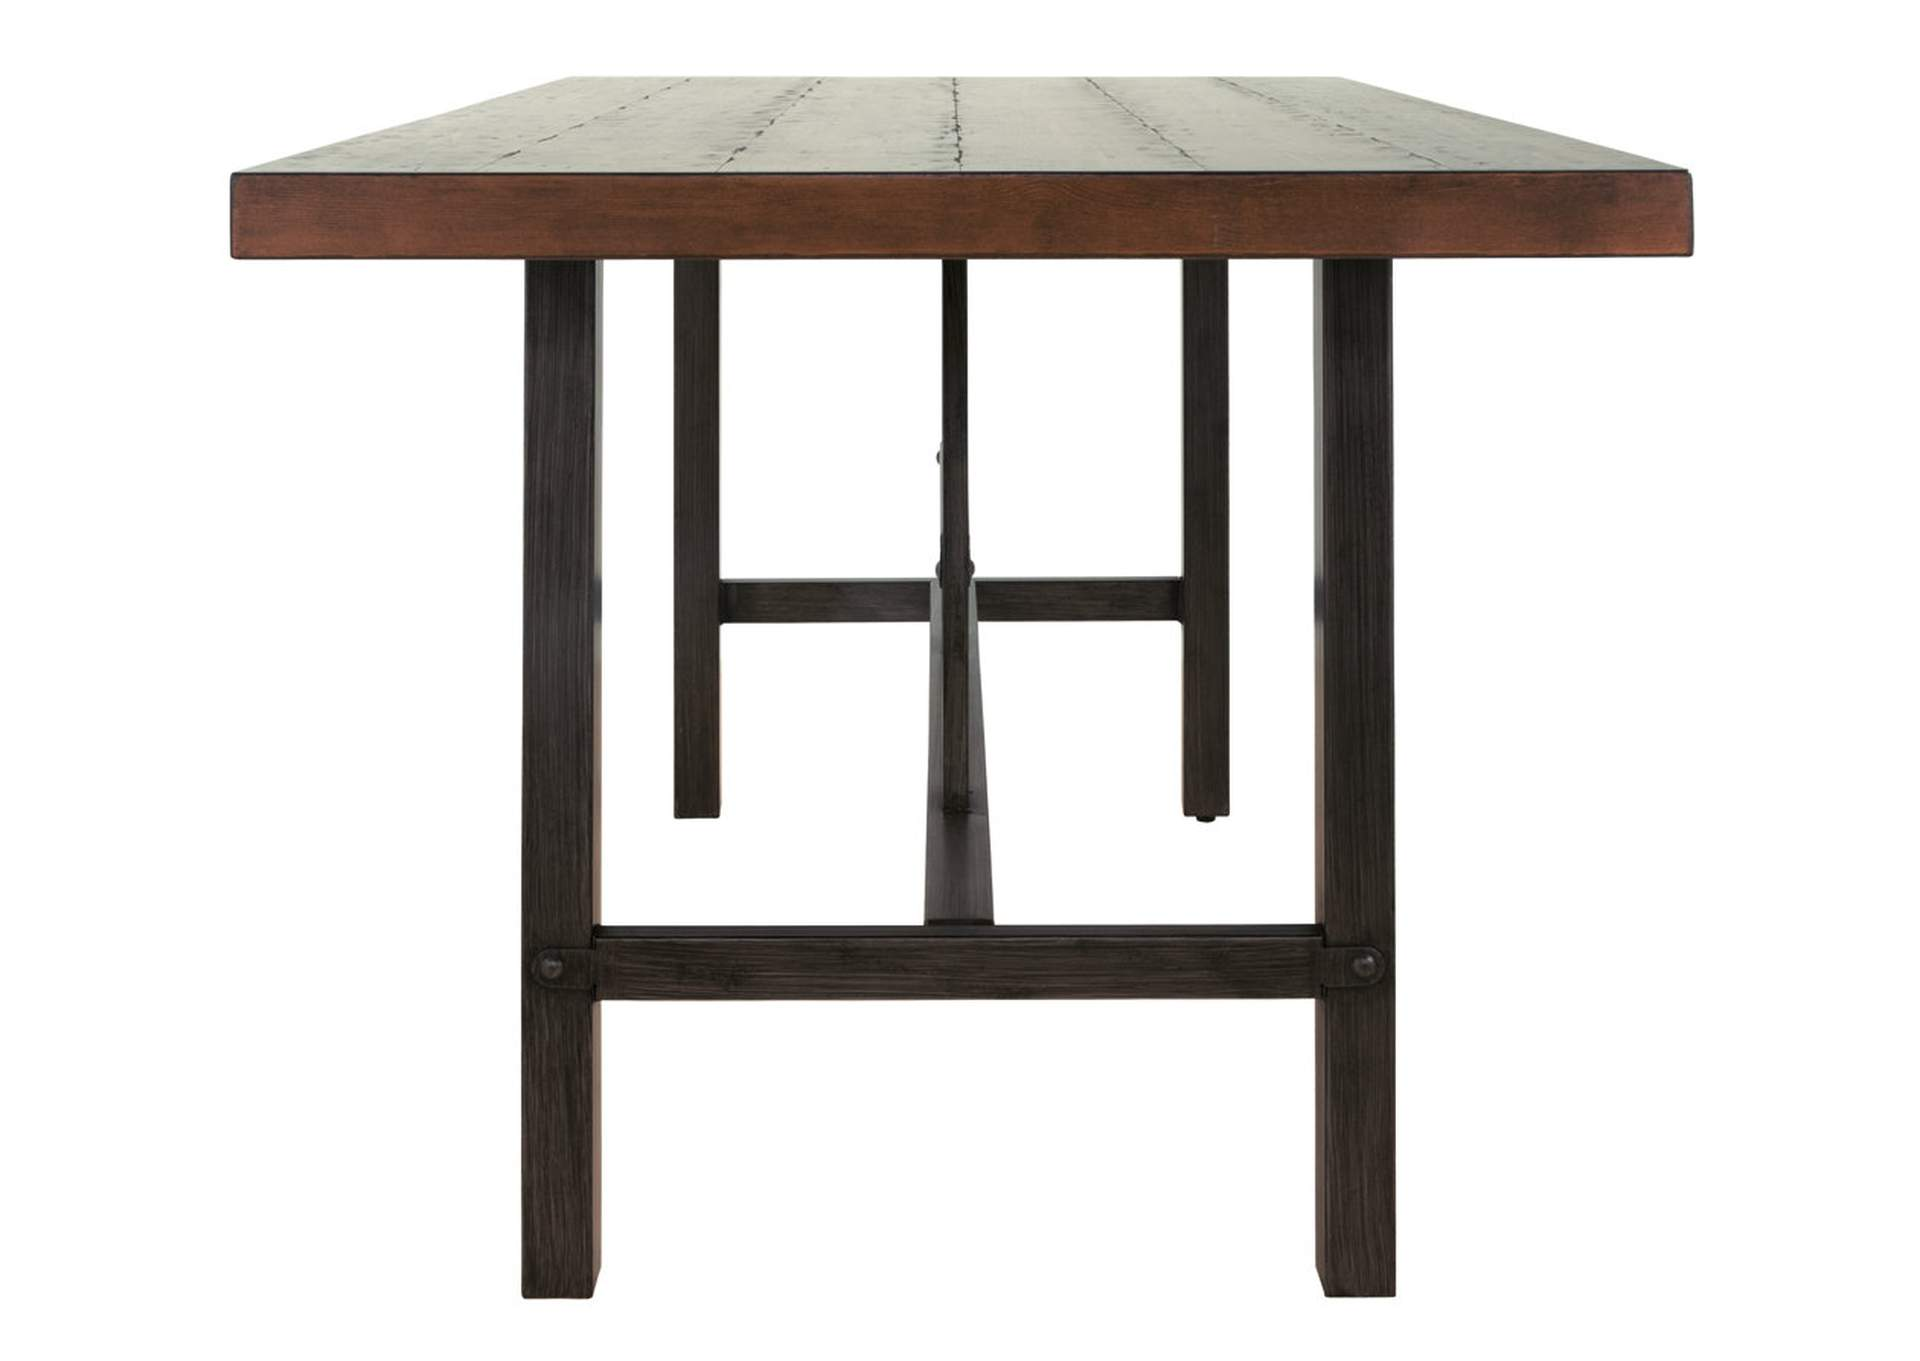 Kavara Medium Brown Rectangular Dining Room Counter Table,Direct To Consumer Express